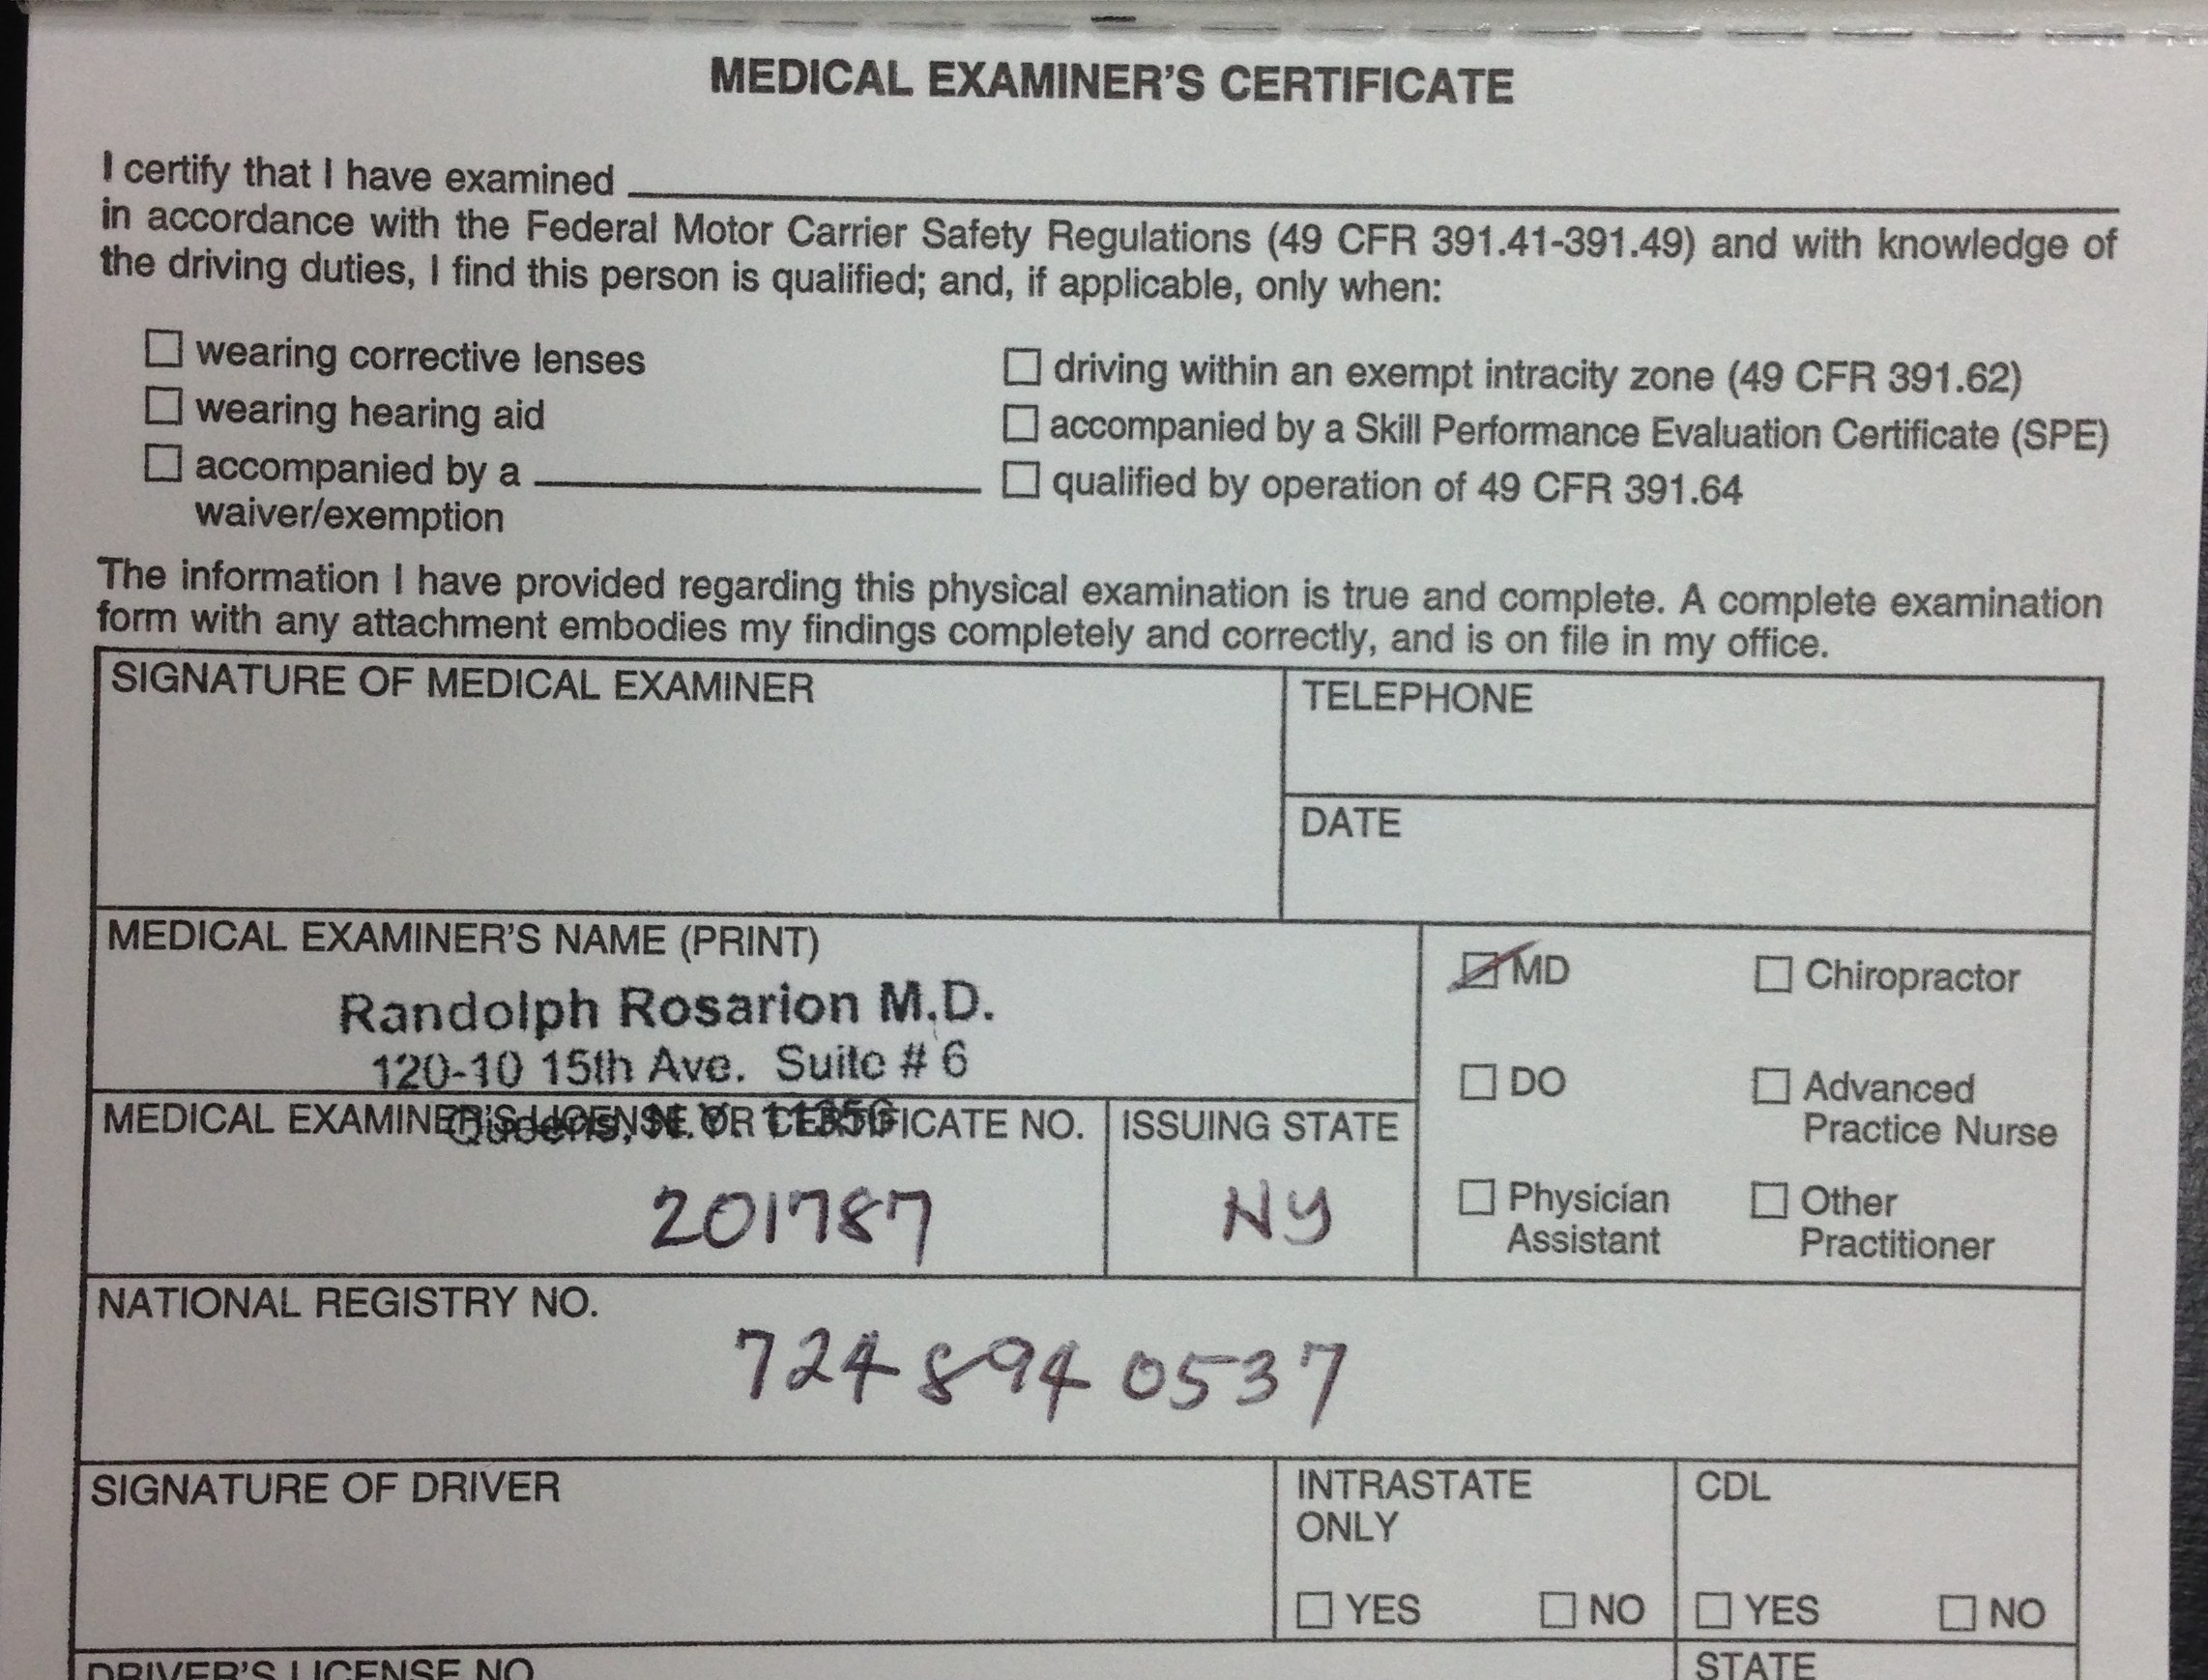 Medical Examination Report Form and Medical Examiner's Certificate ...